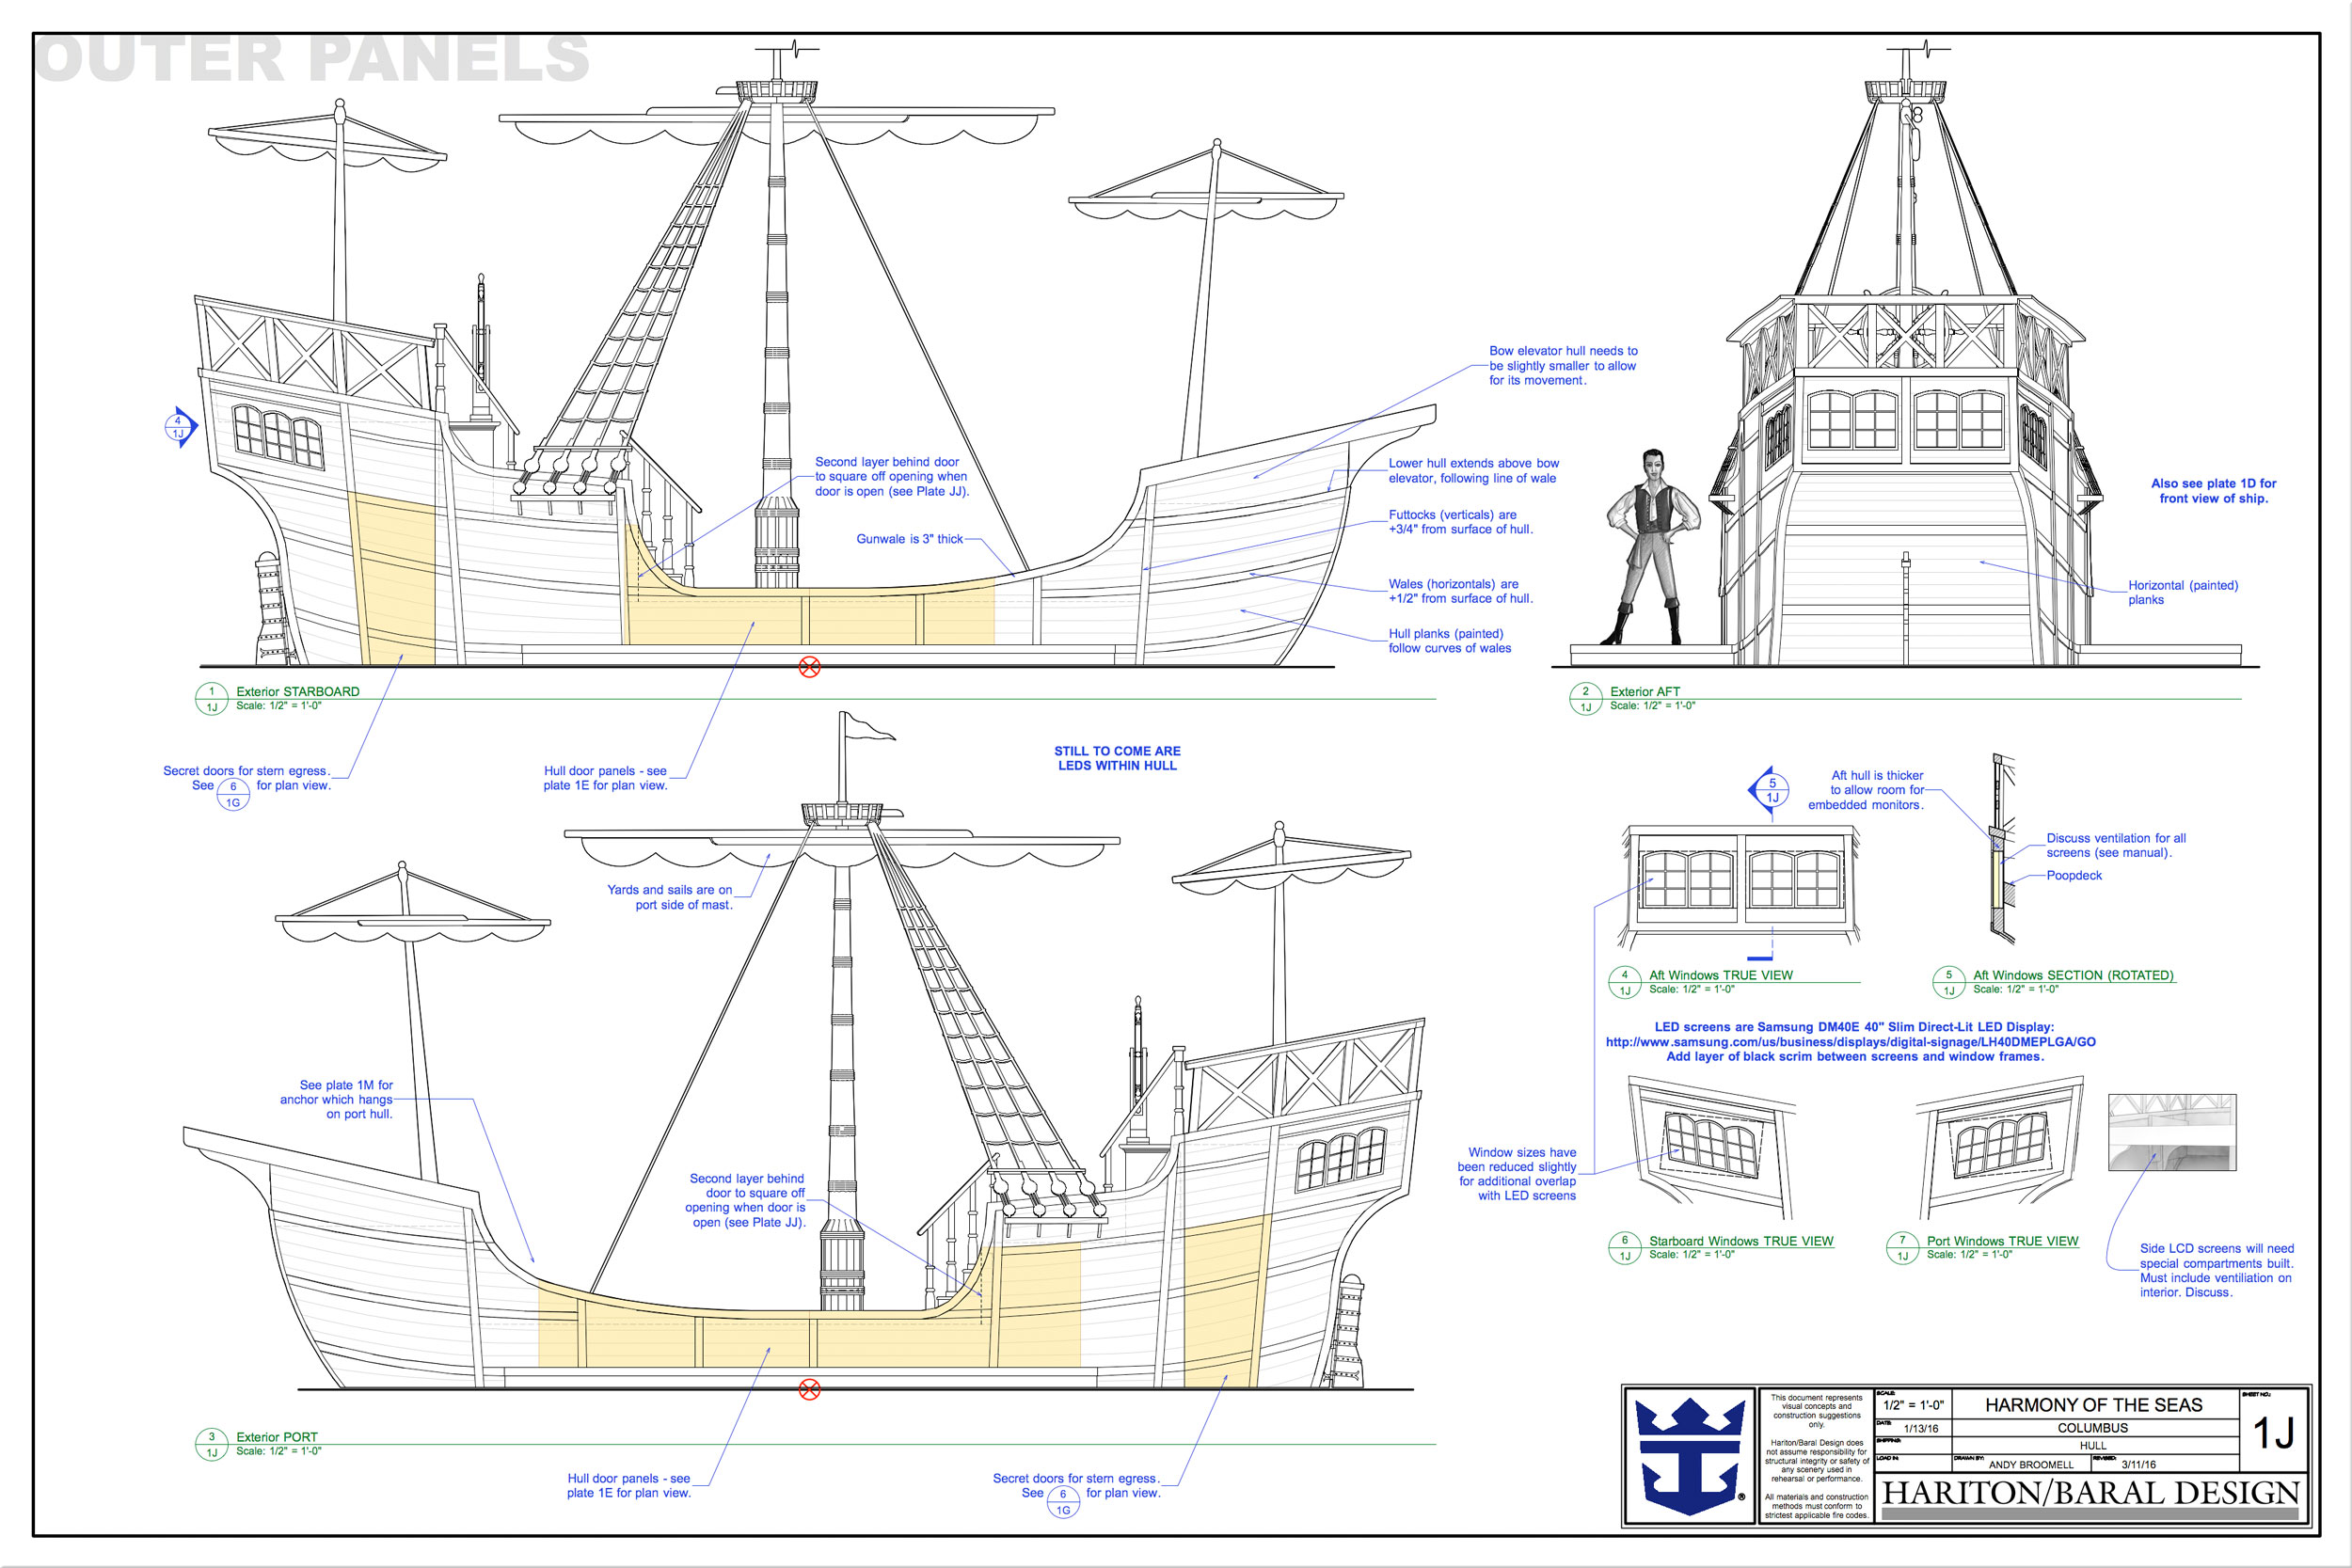 andy-broomell-drafting-columbus9-musical-vectorworks-scenic-design-scenery-plans-sailing-ship.jpg